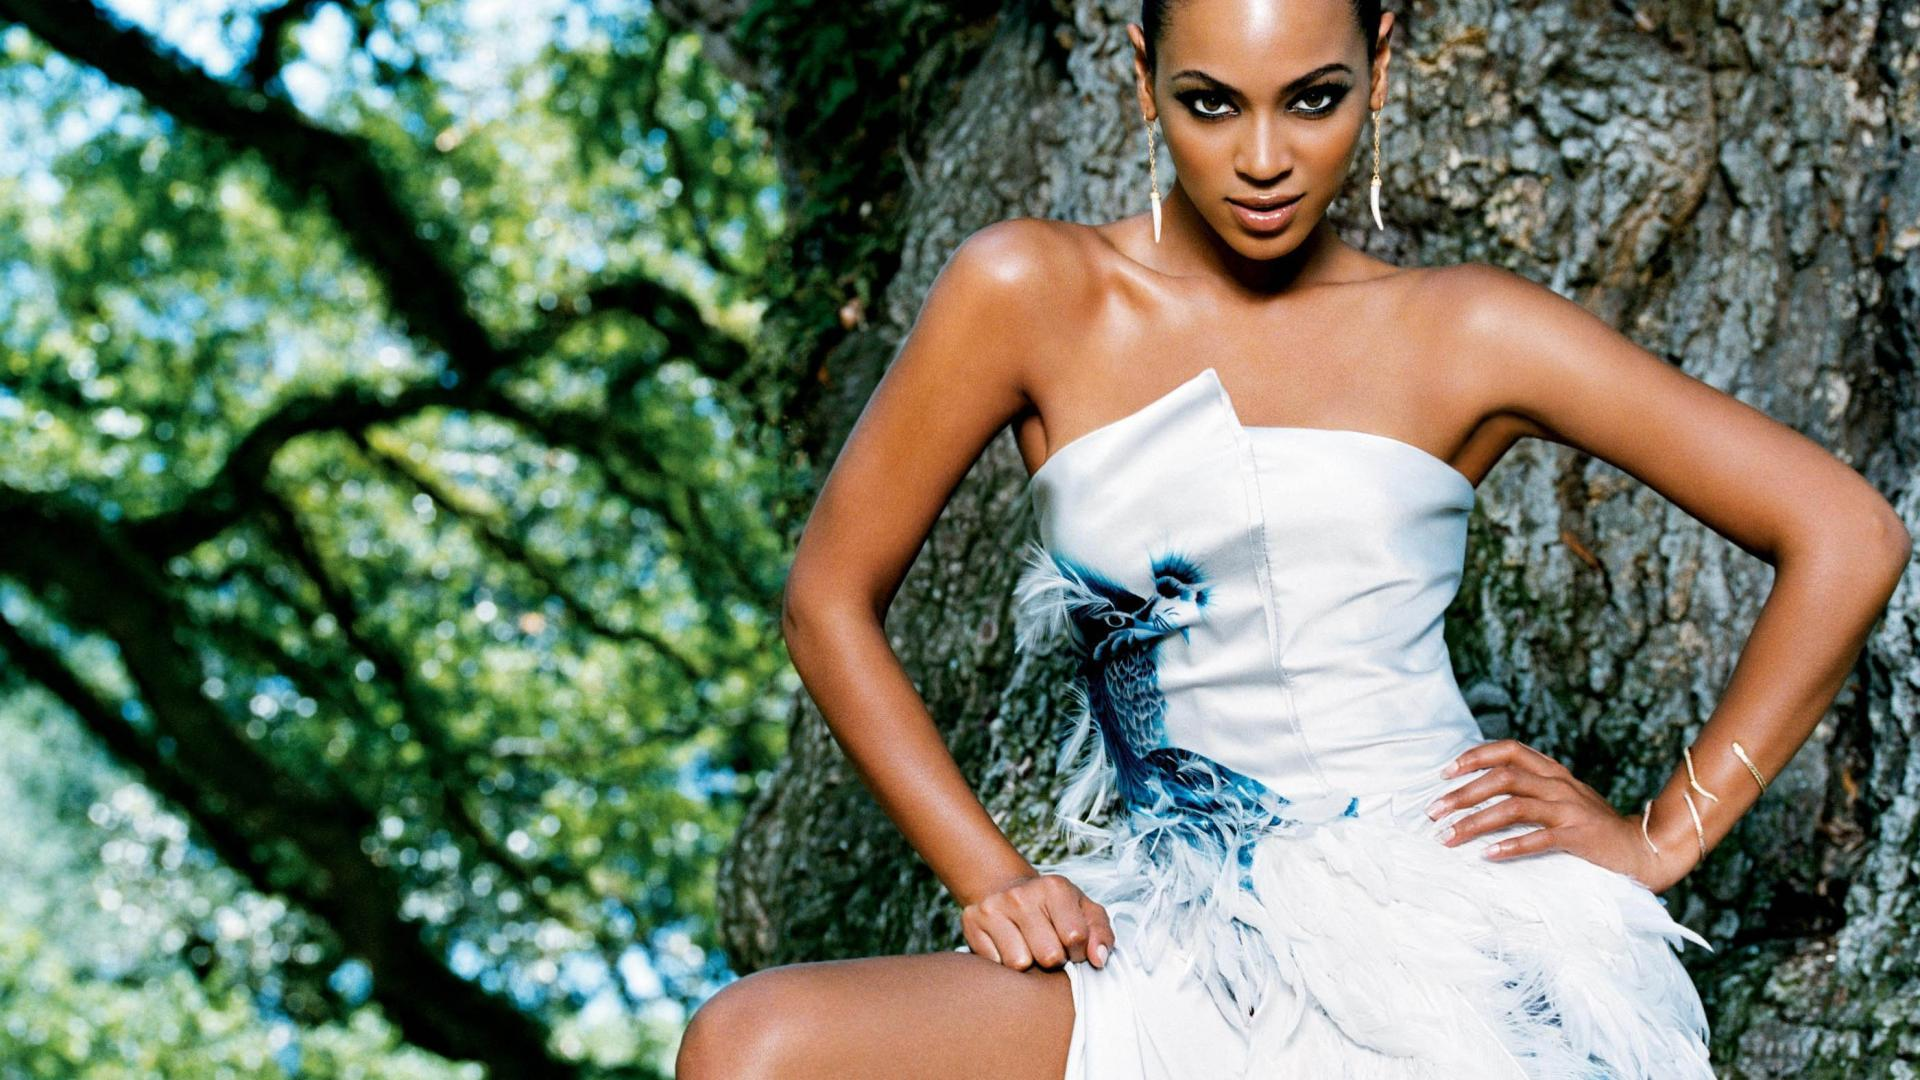 beyonce hd 12 rap wallpapers